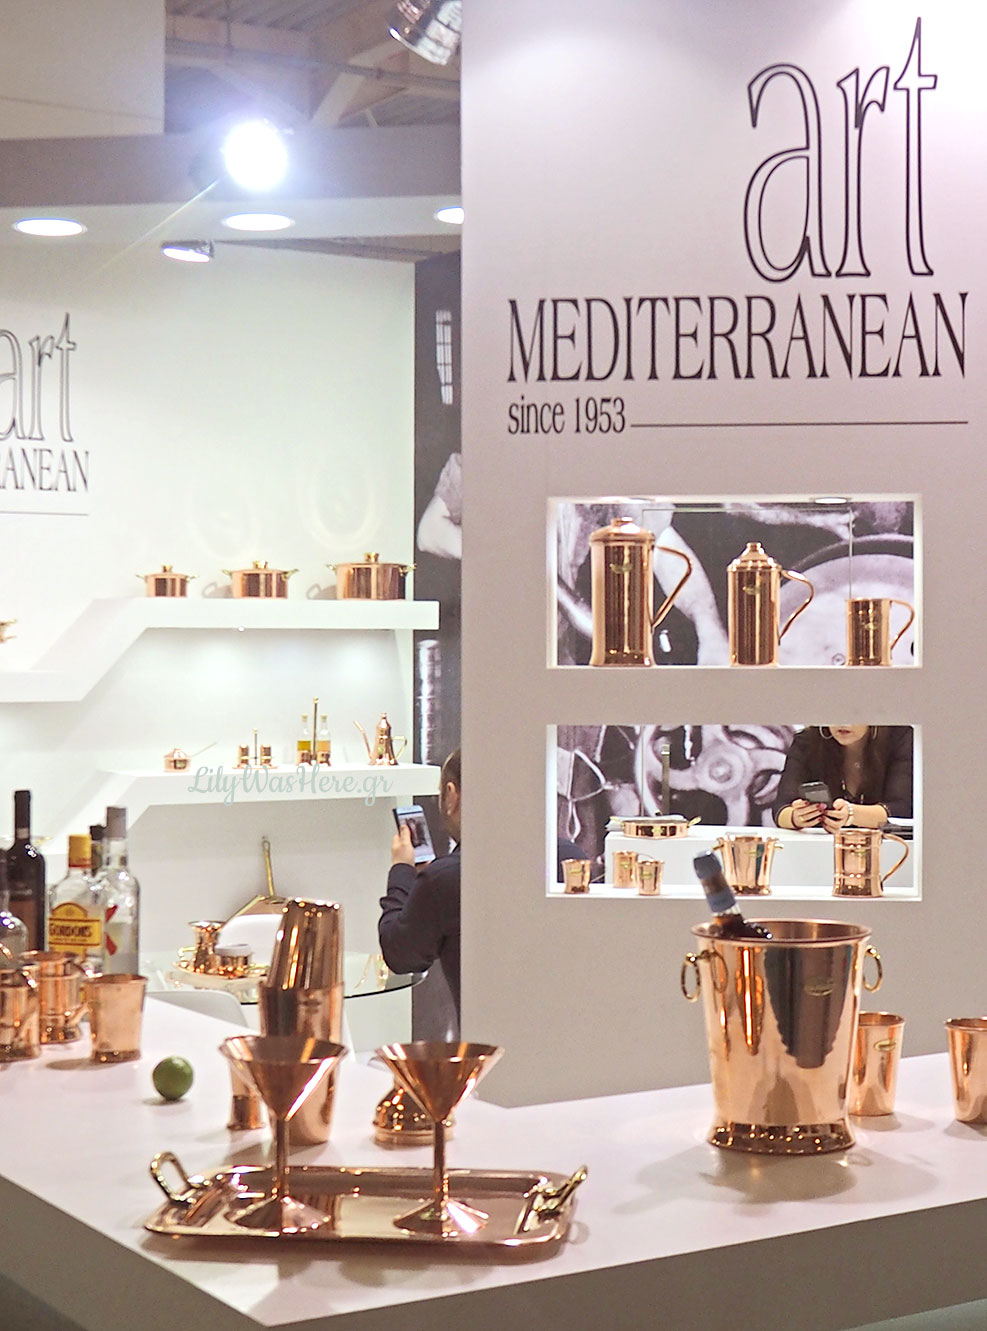 HoReCa expo | Art mediterranean Hotel equipment